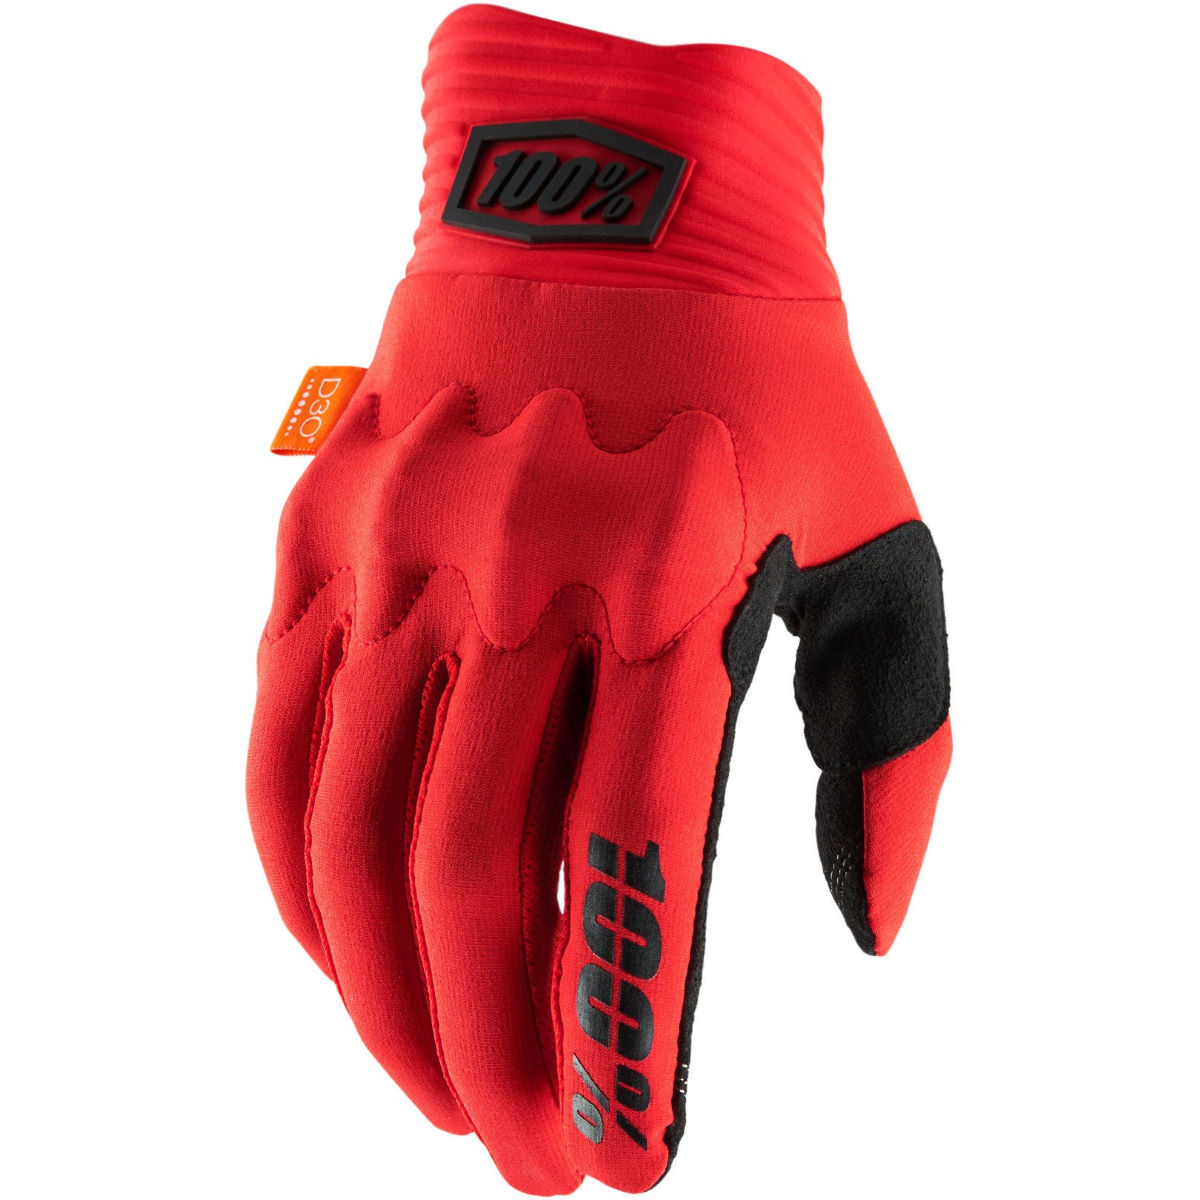 100% Cognito D30 Gloves - S Red/black  Gloves